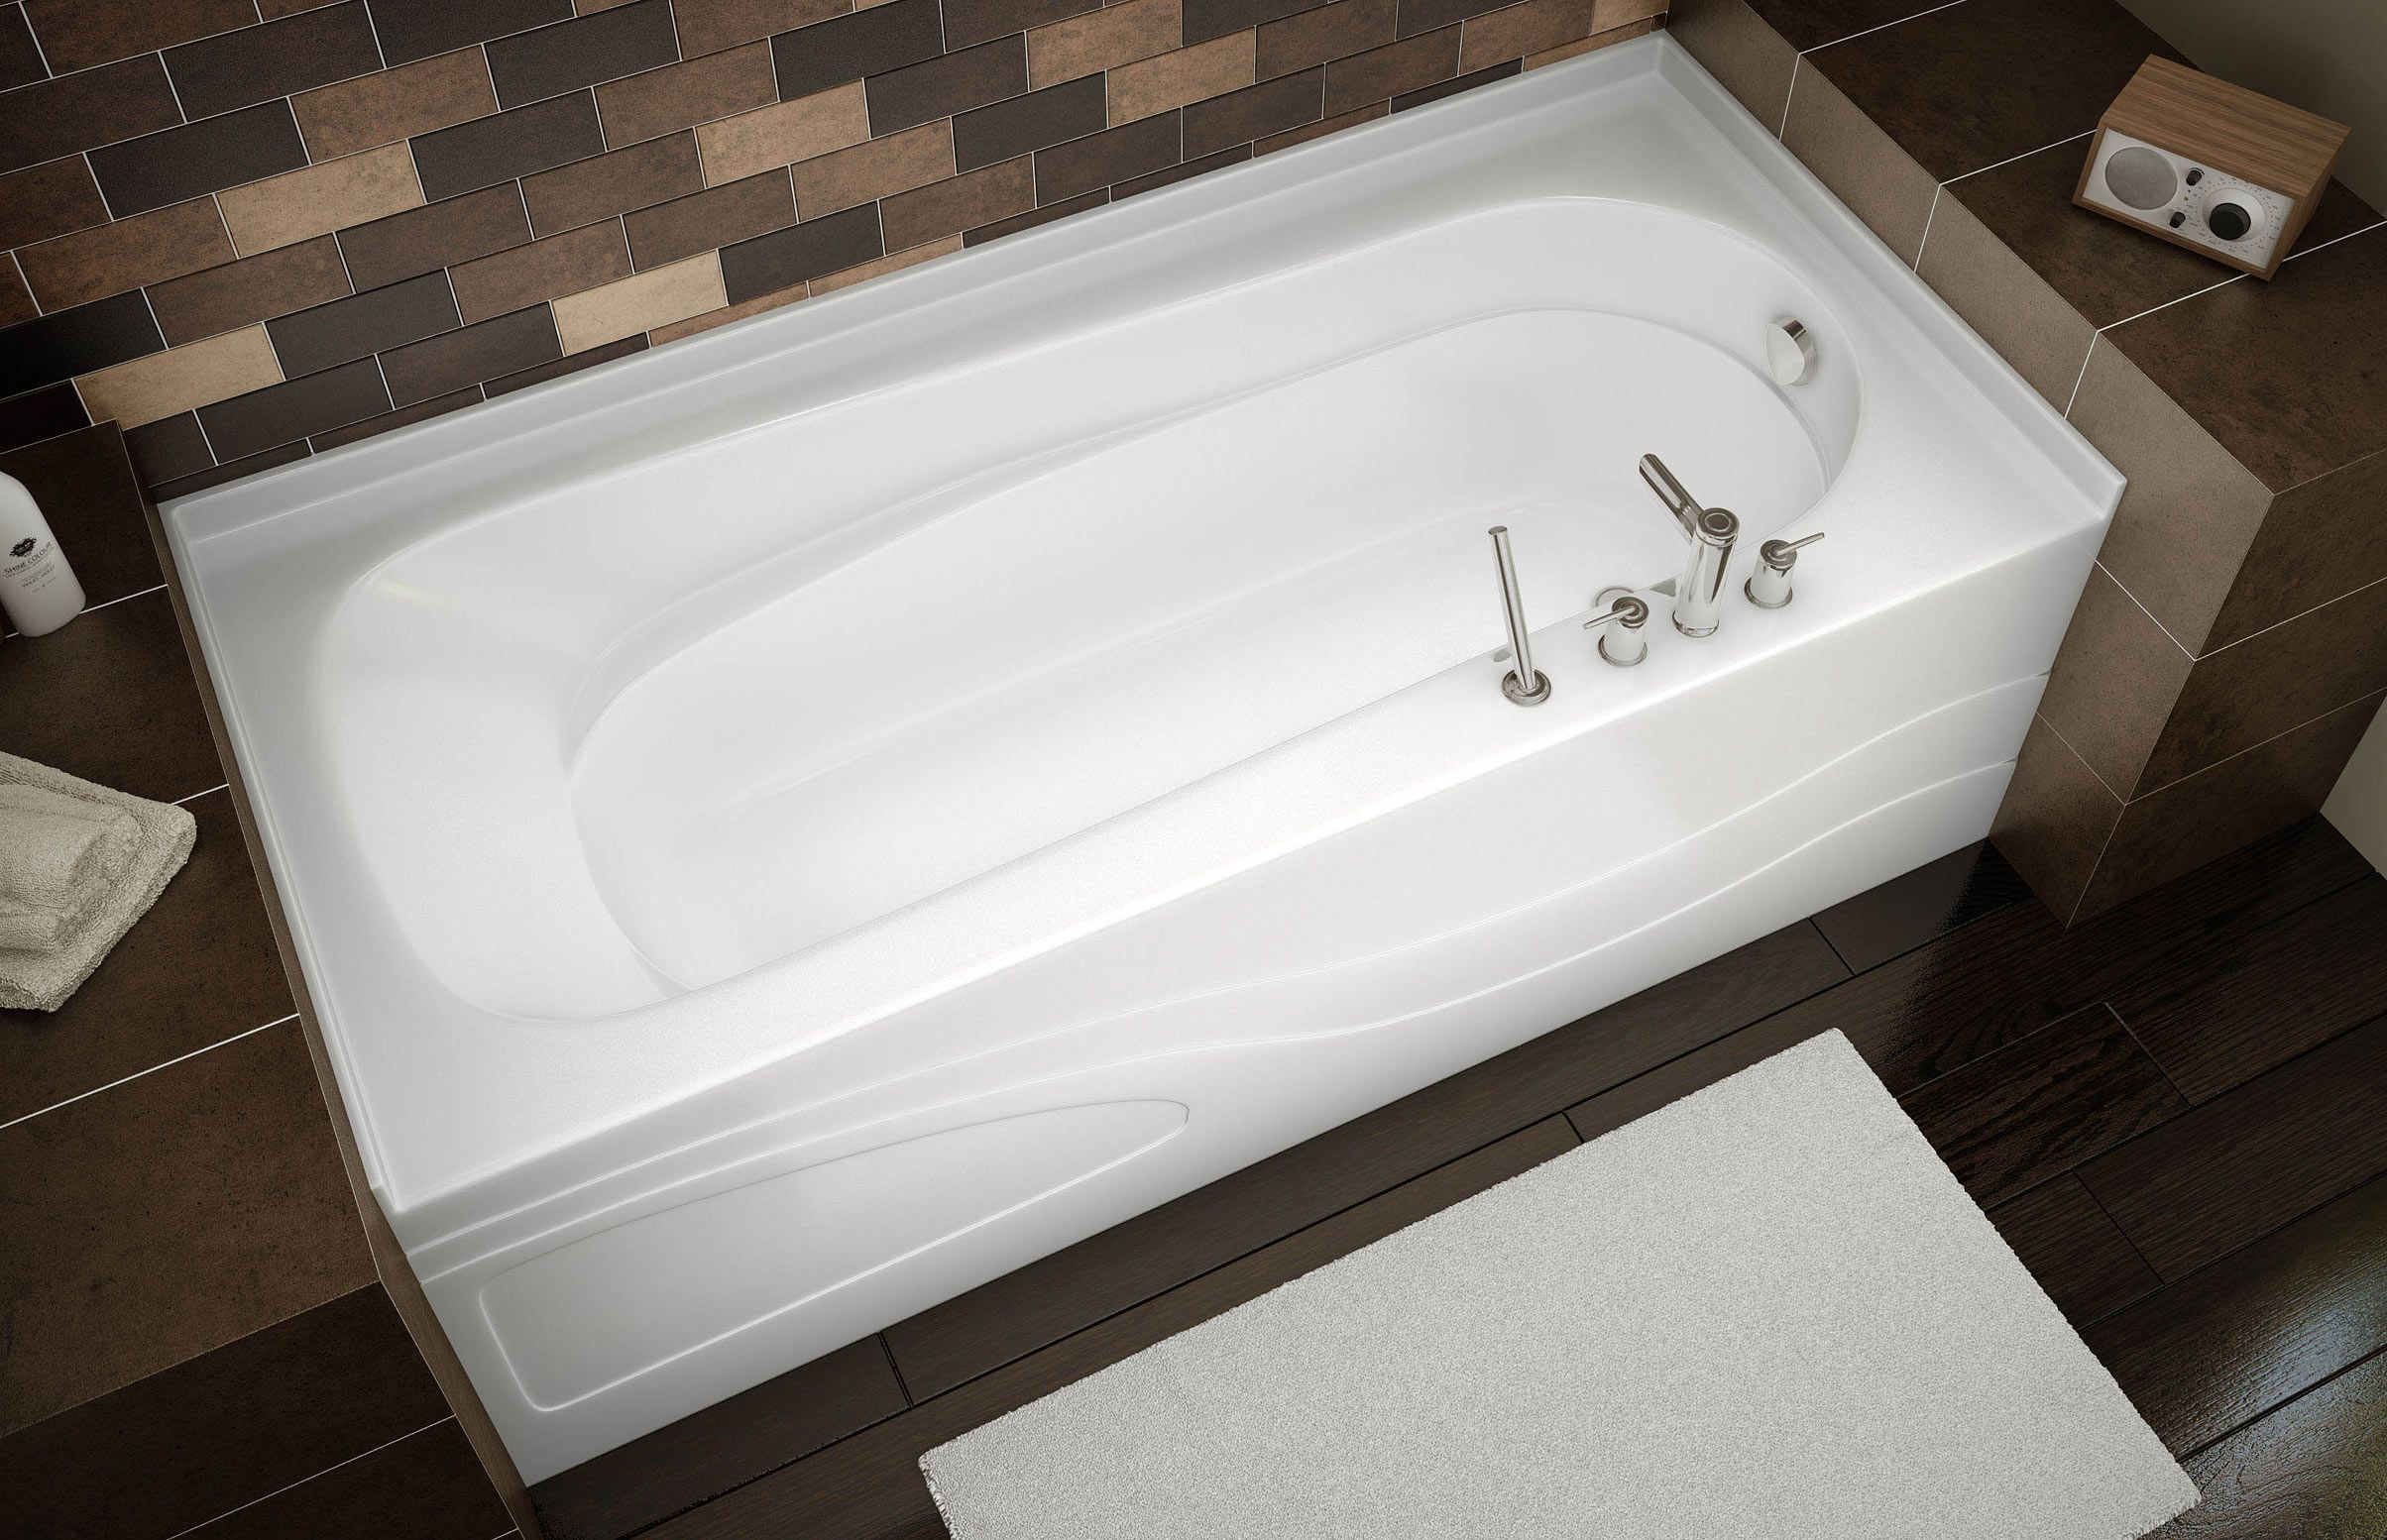 Pacific line plrea alcove bathtub maax professional for Alcove bathtub dimensions